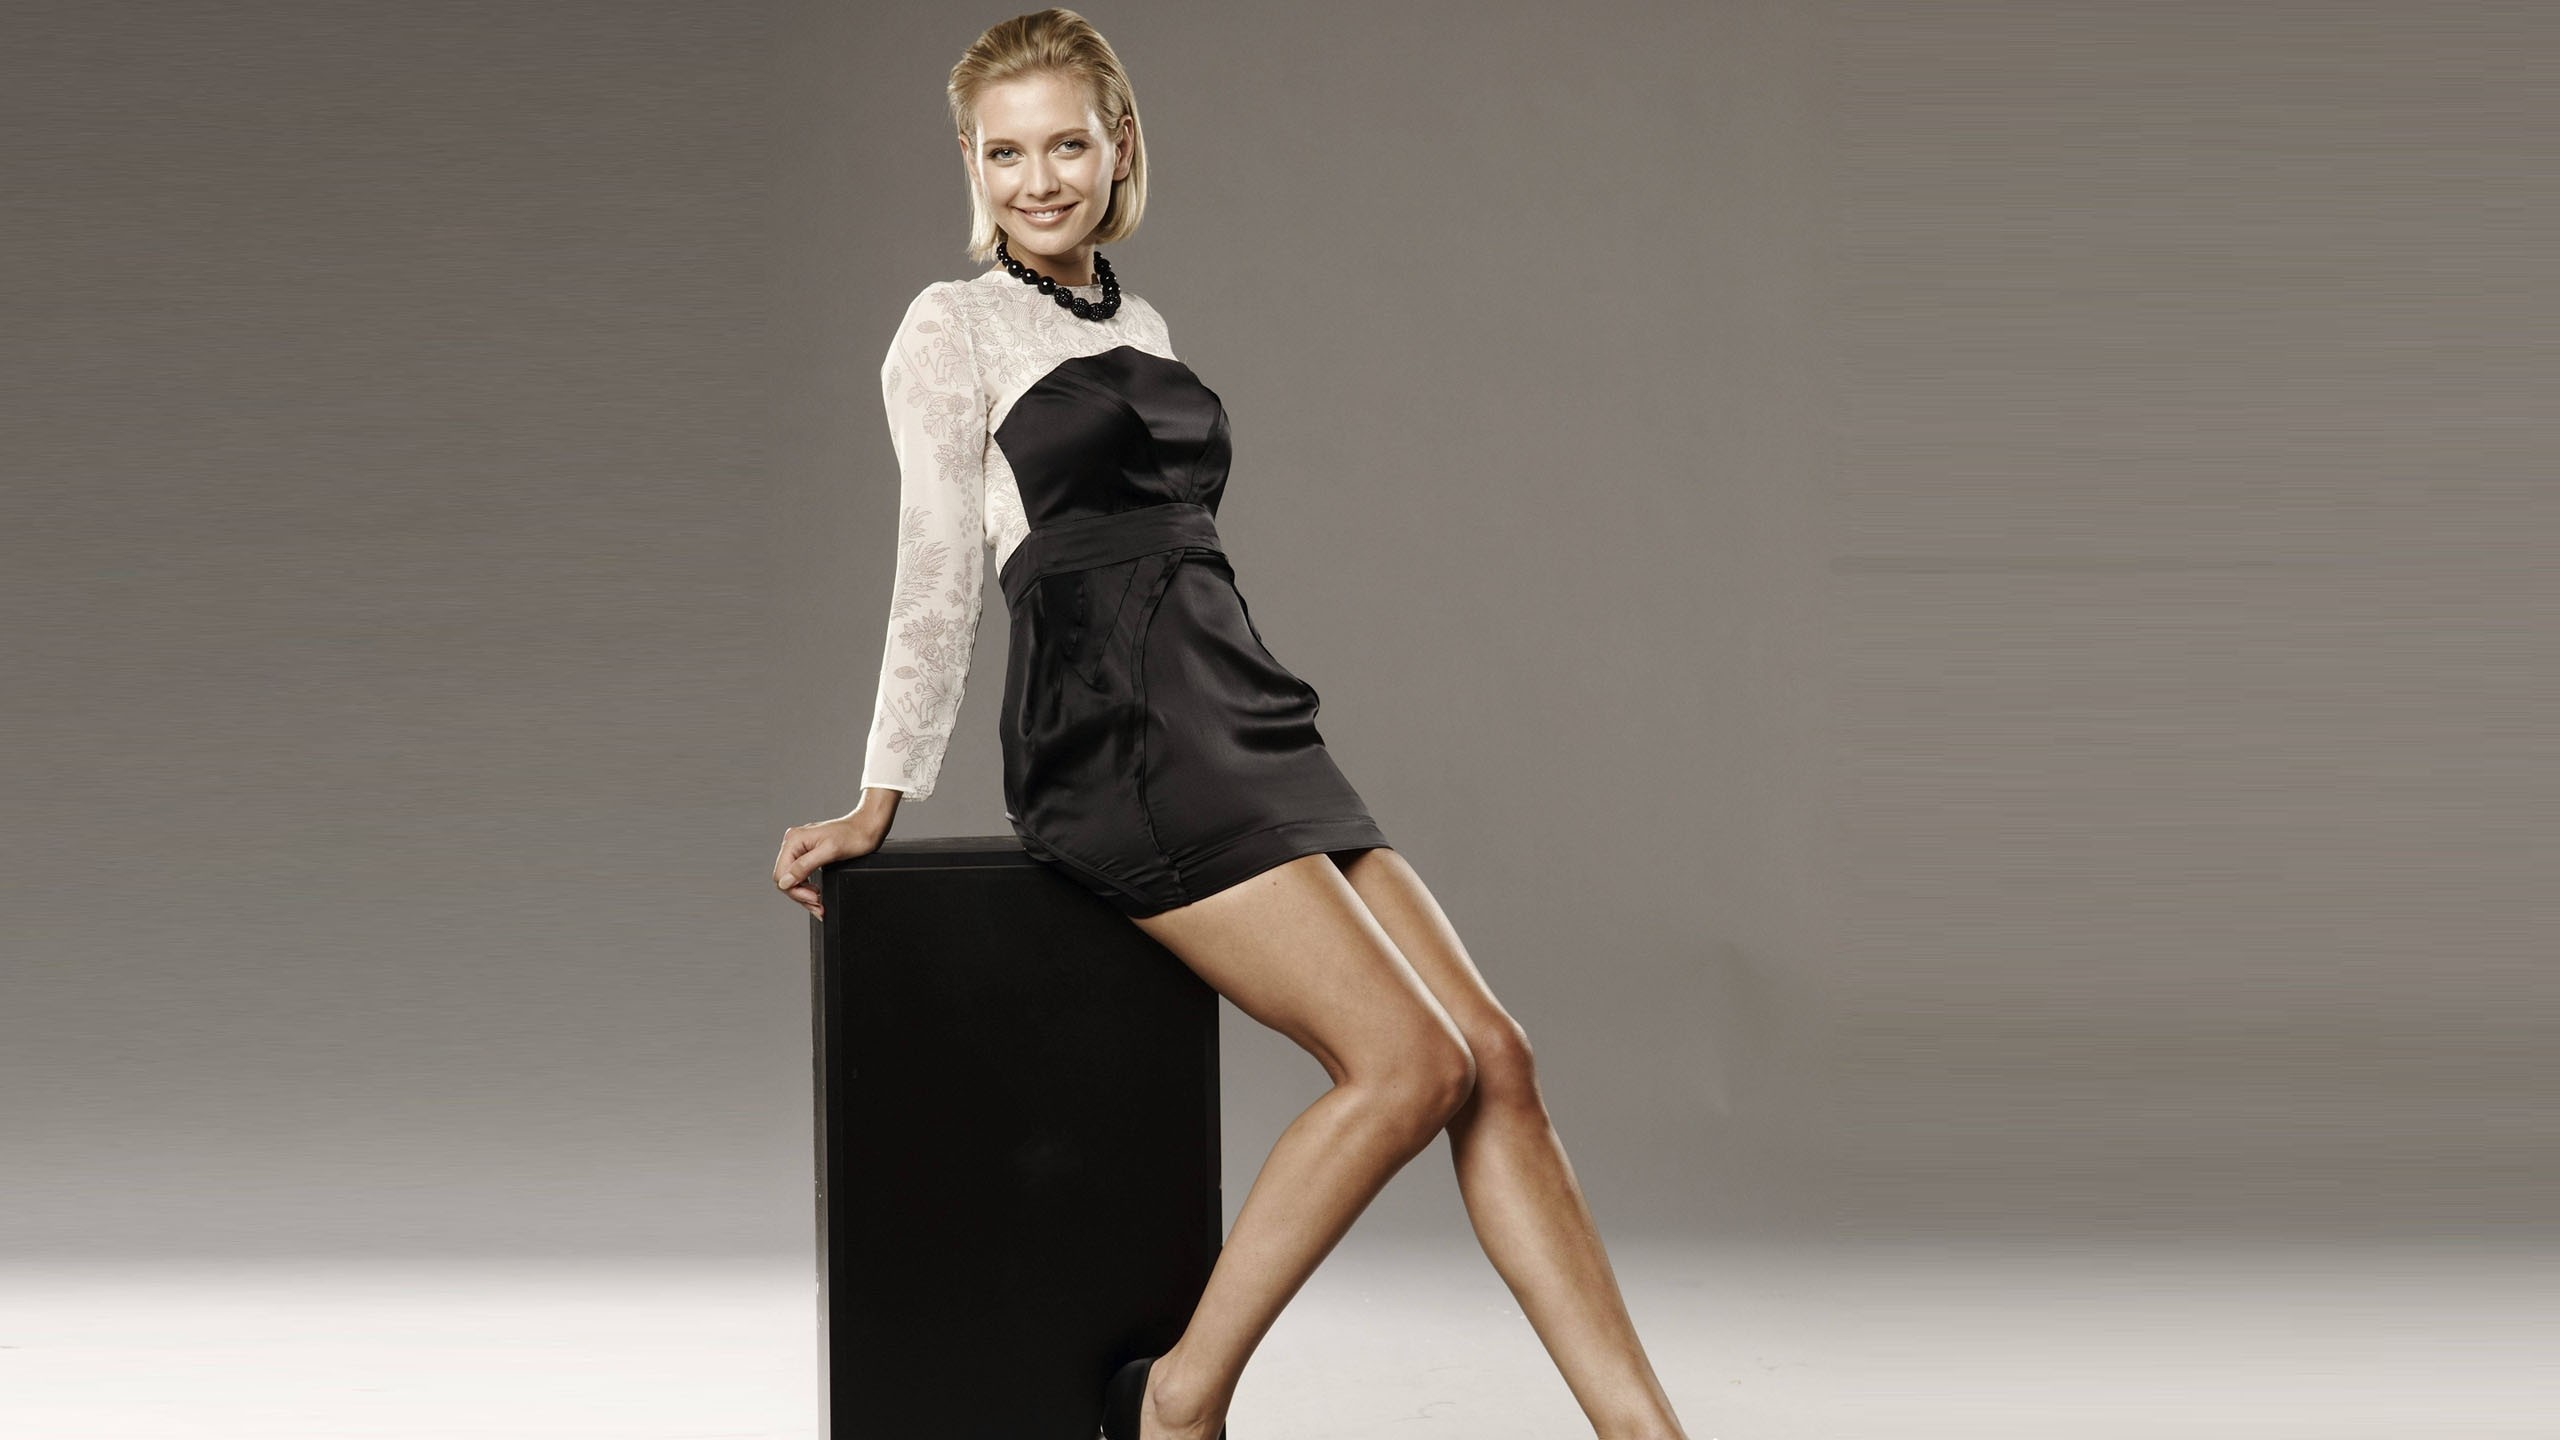 4 Rachel Riley Hd Wallpapers Background Images